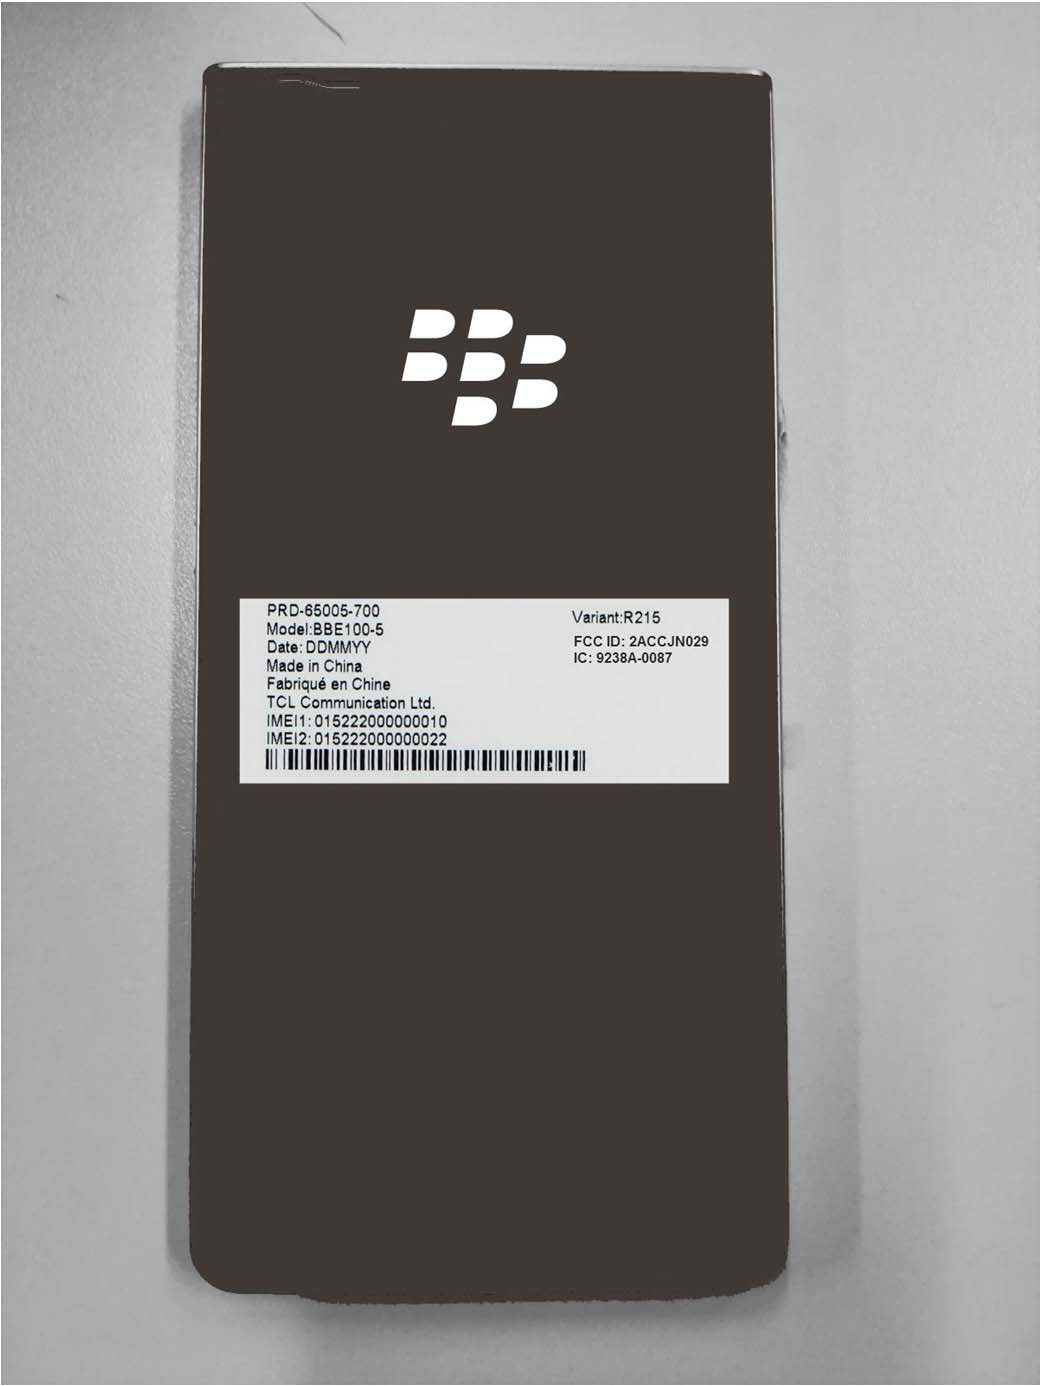 FCC docs confirm BlackBerry KEY2 LE name for rumored sibling